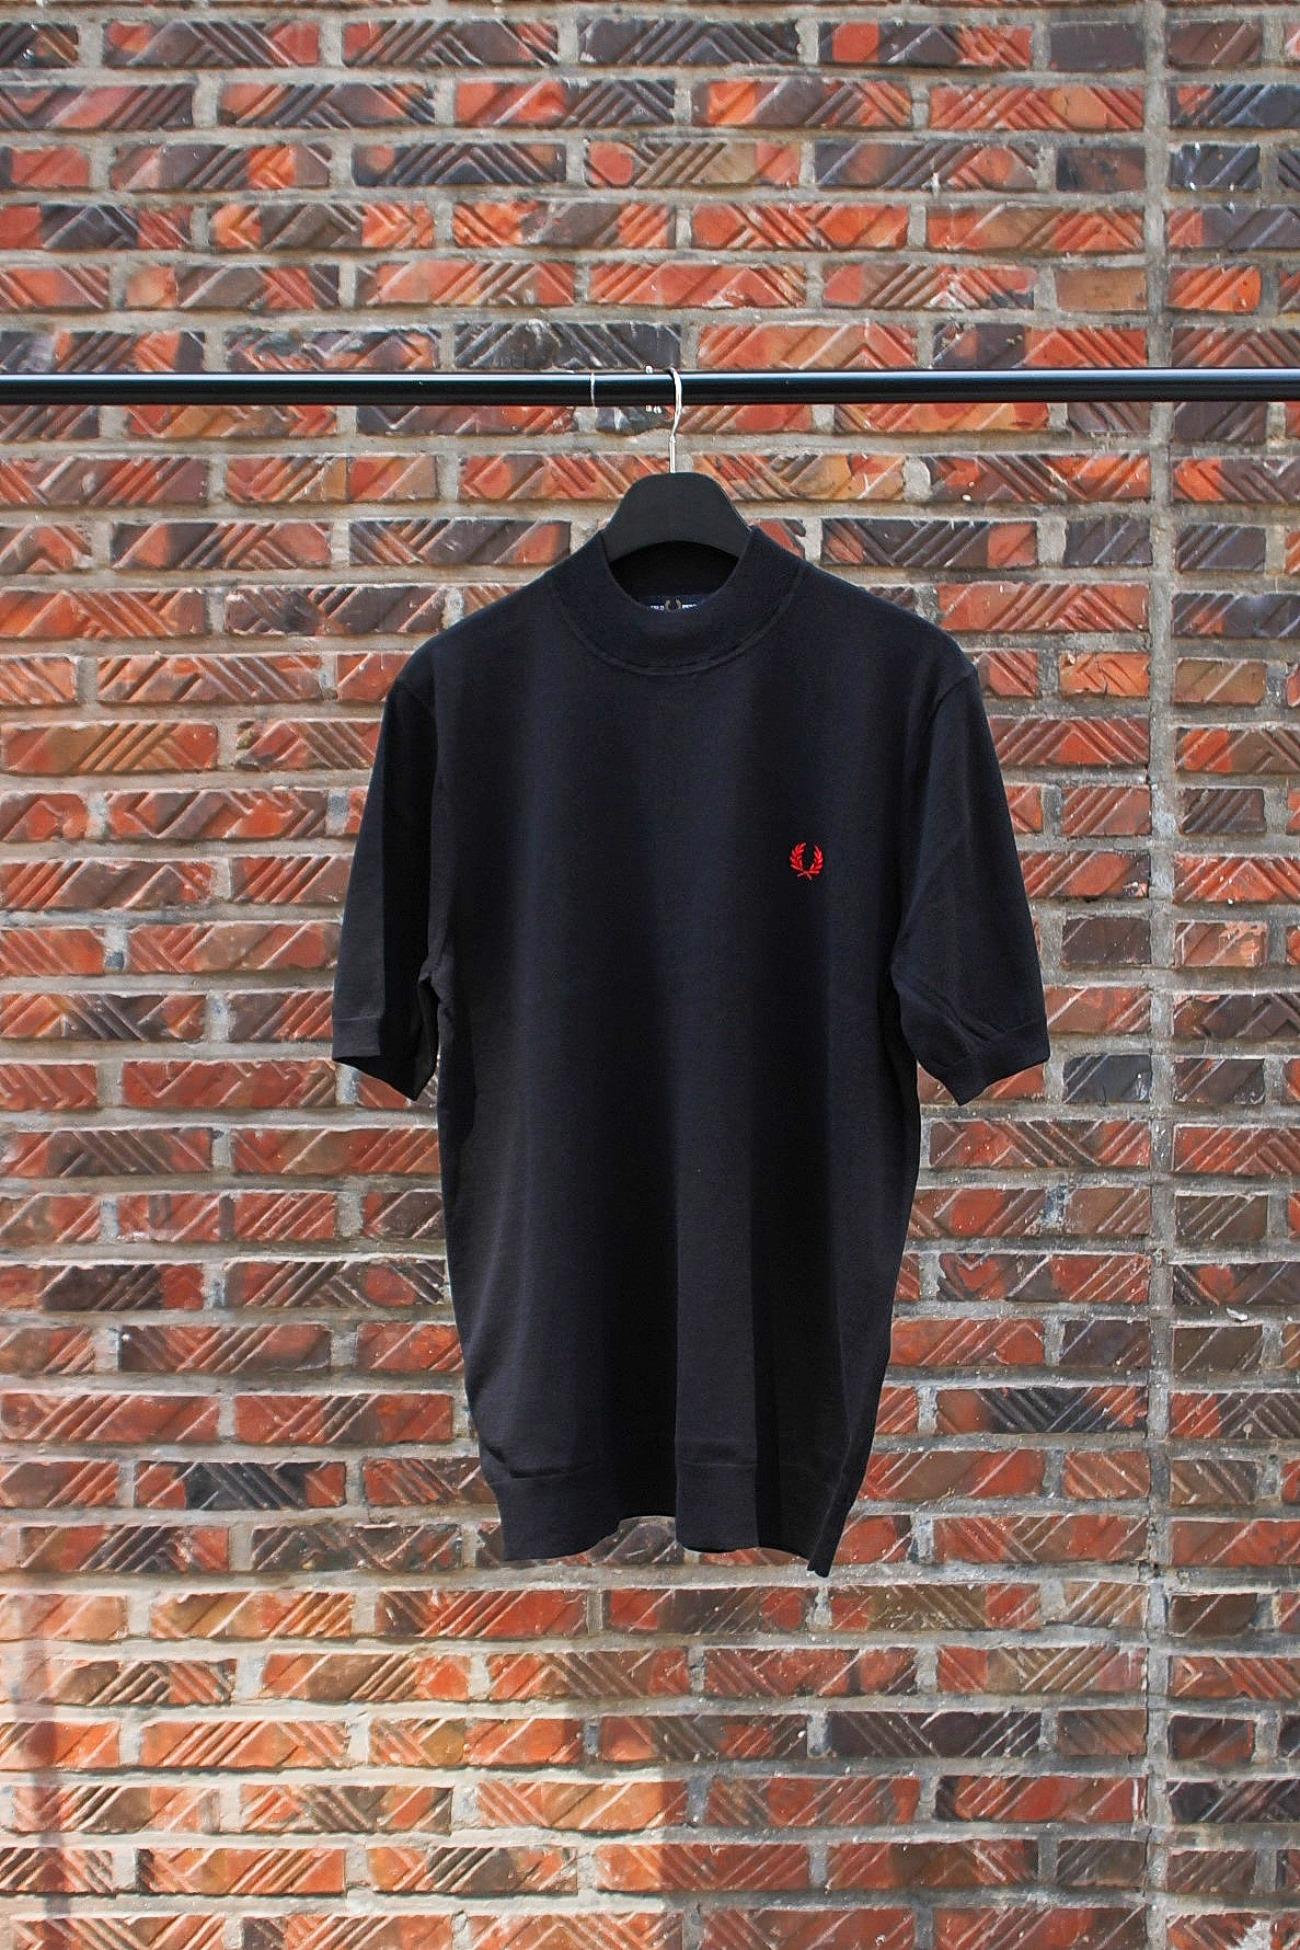 [FRED PERRY] Knitted Turtleneck T-Shirt - Black